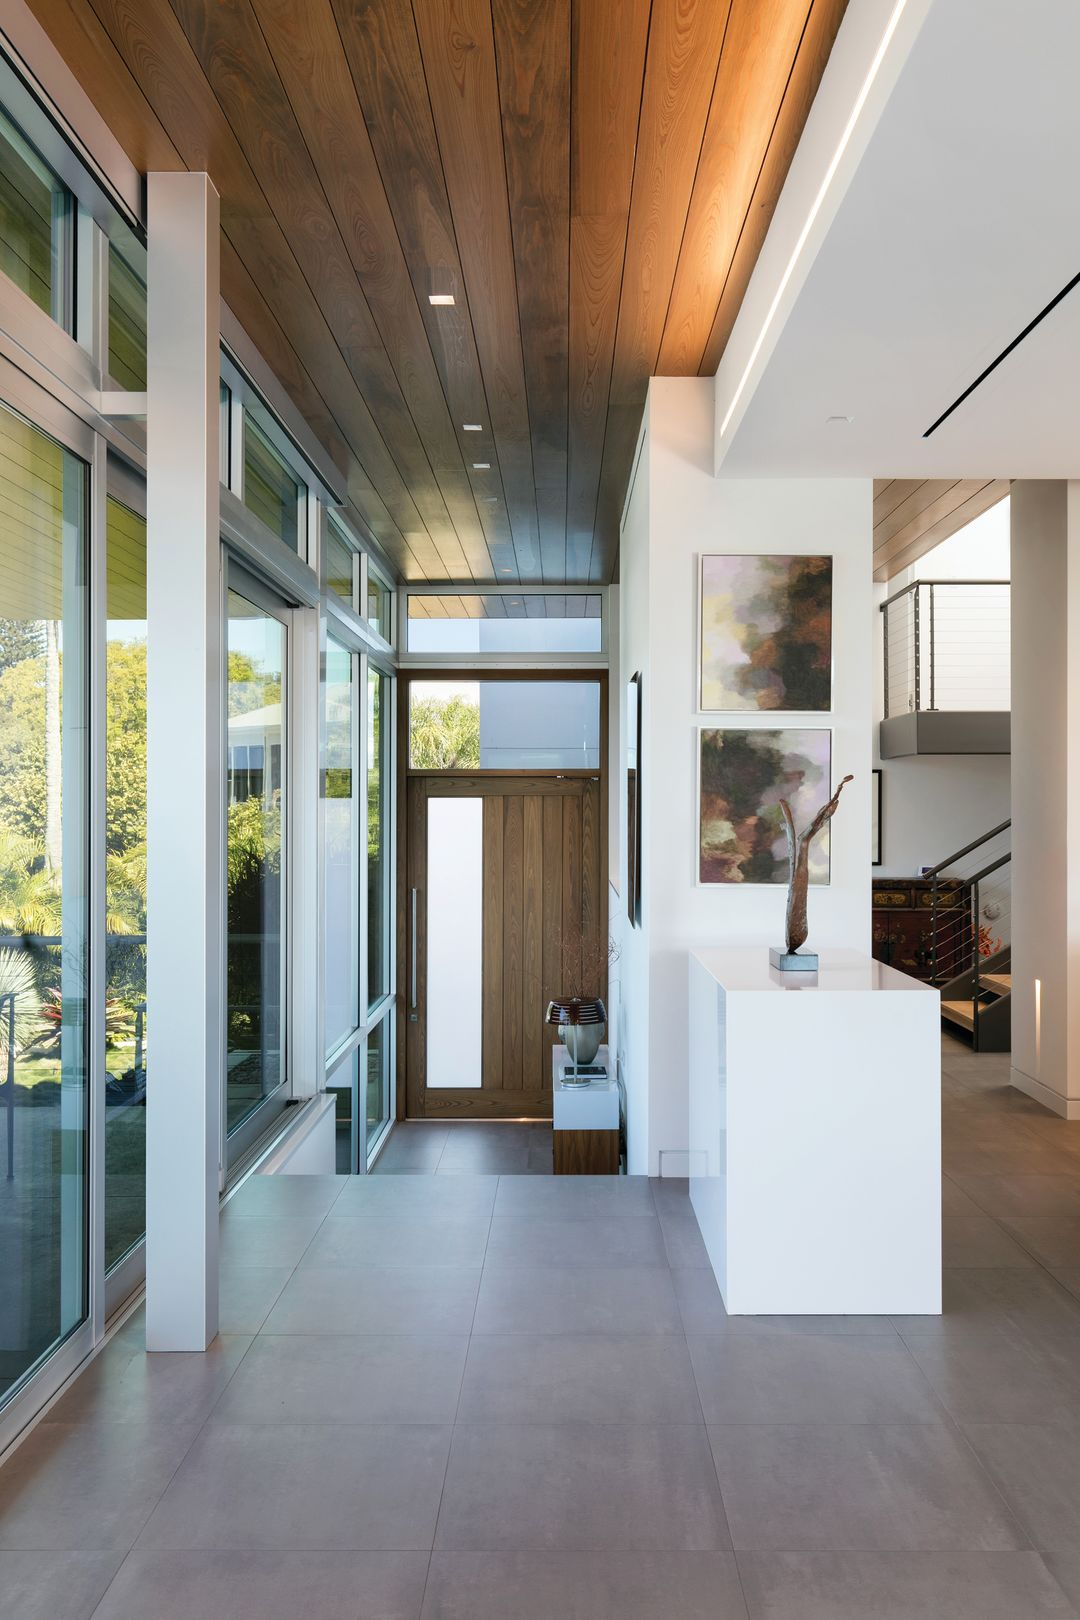 Architect Guy Peterson Grounds His Latest Home Design In